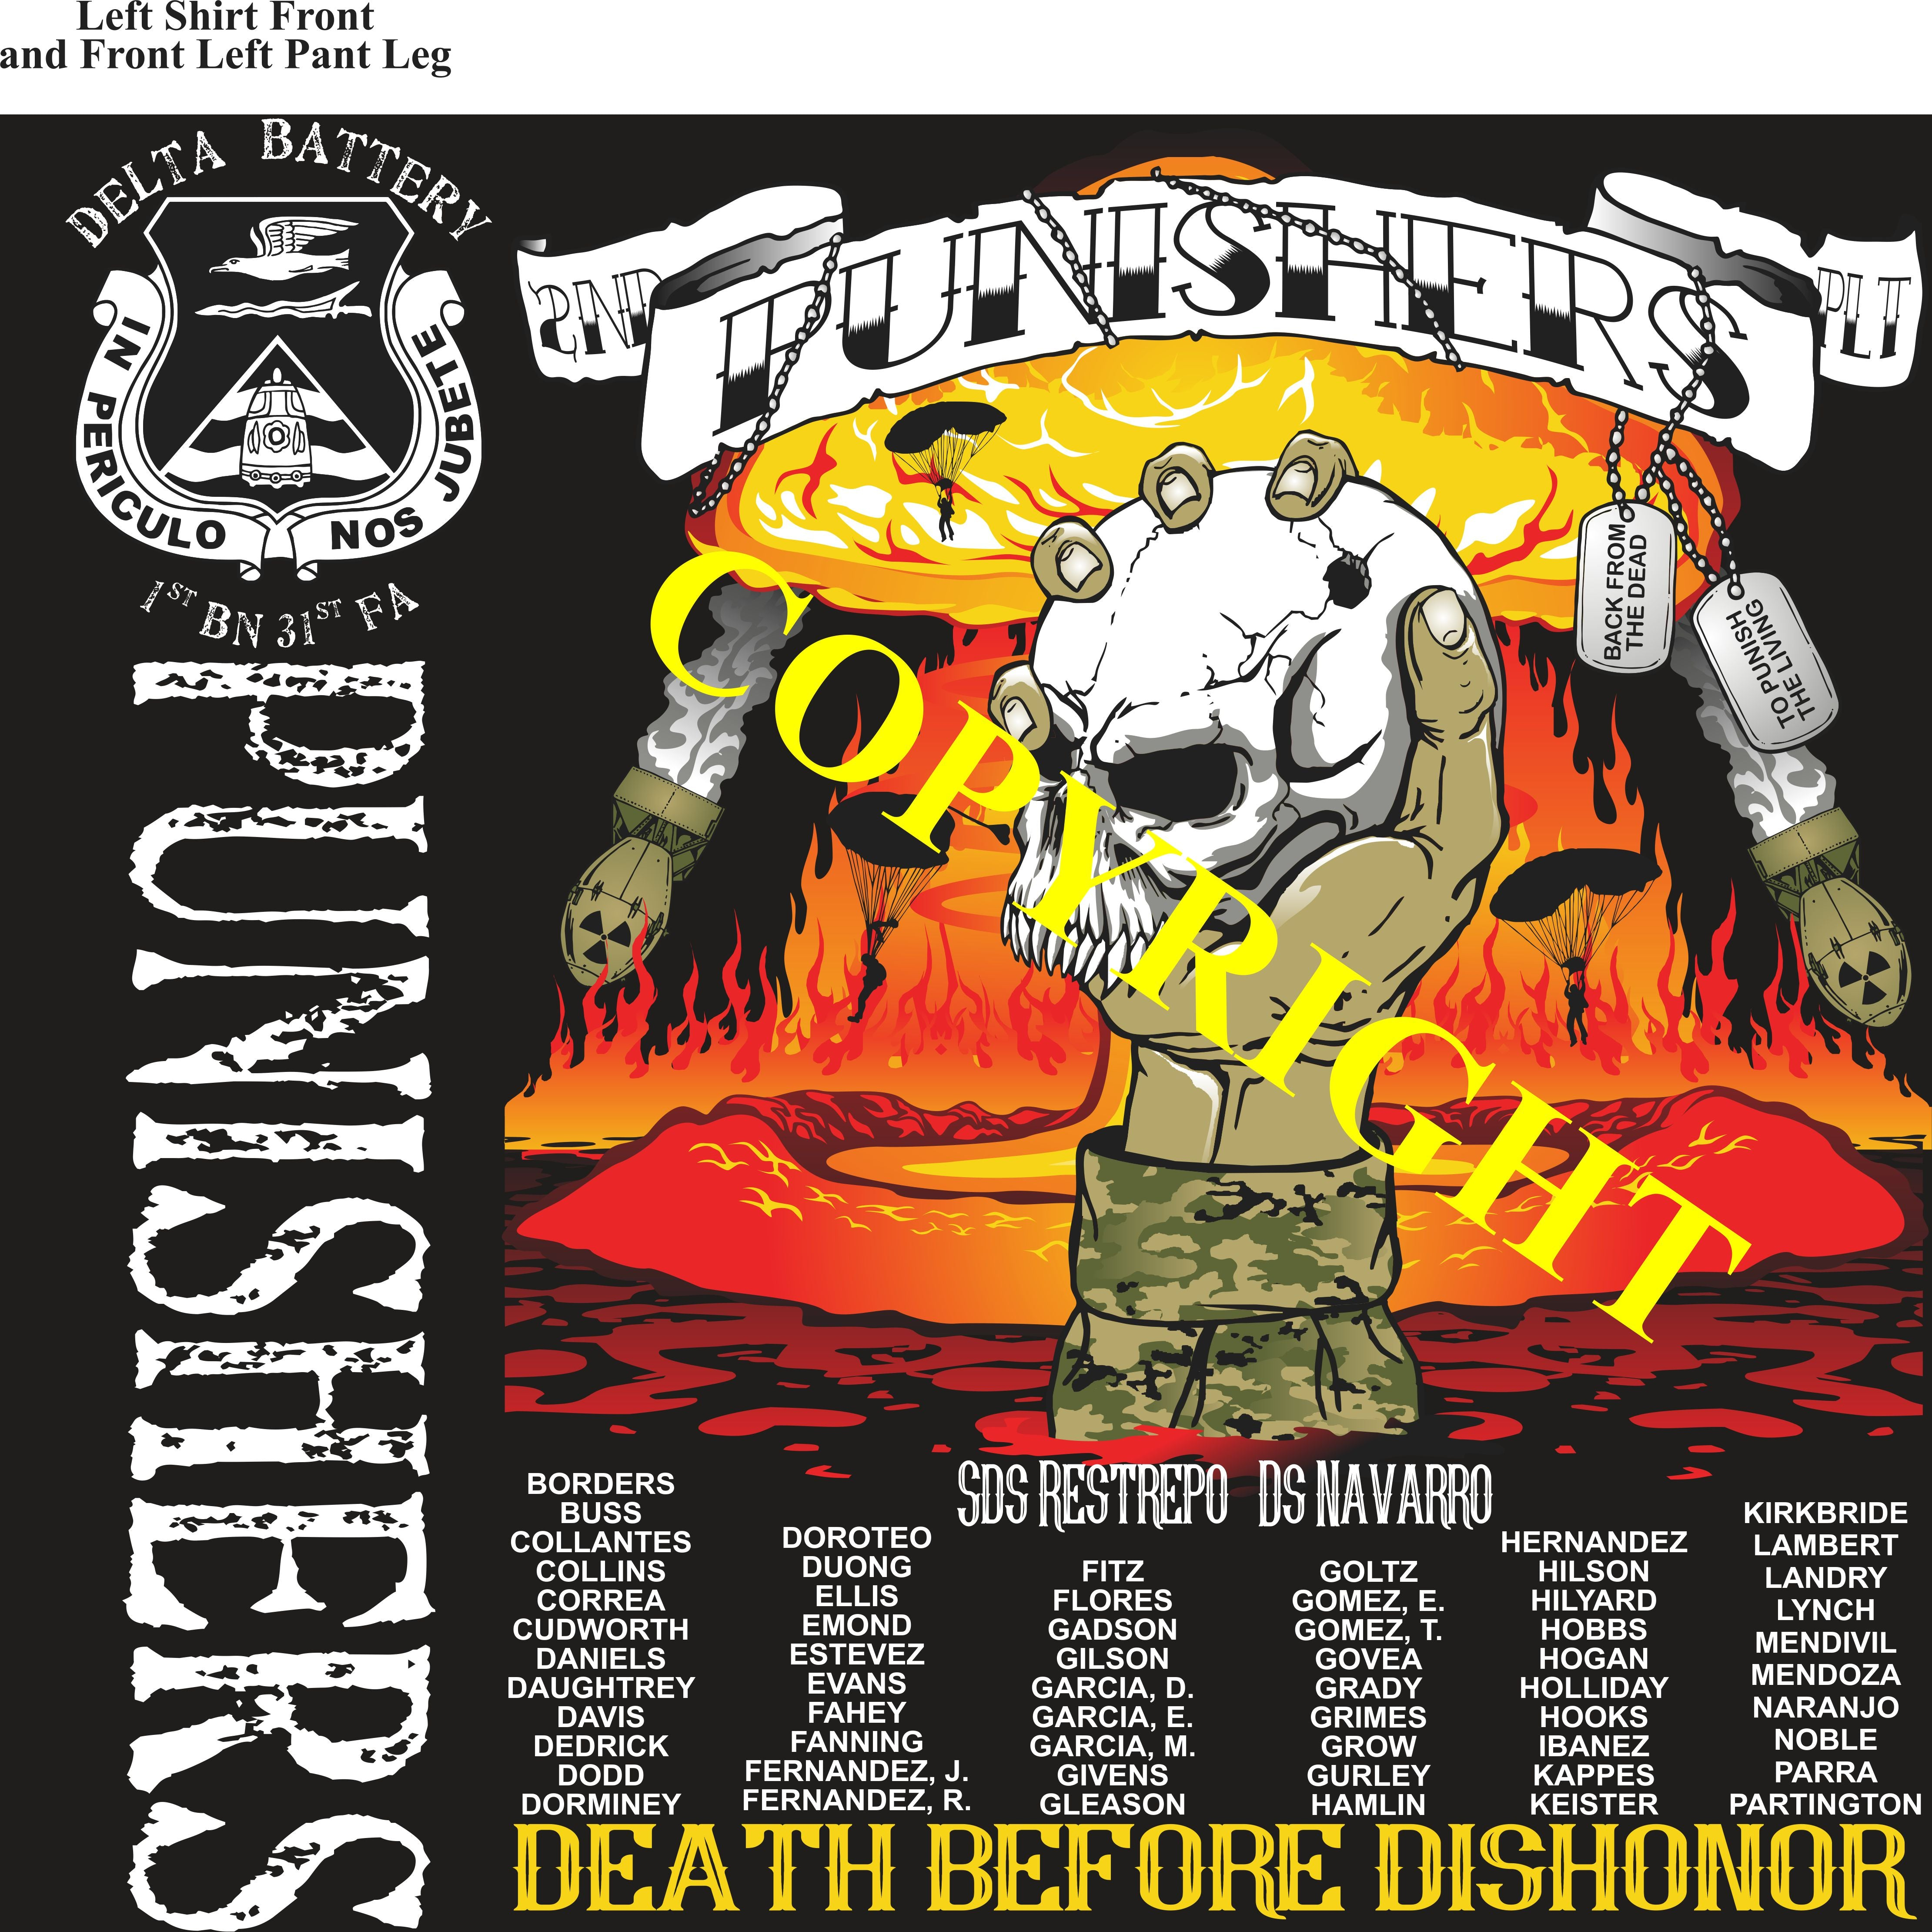 Platoon Shirts (2nd generation print) DELTA 1st 31st PUNISHERS OCT 2019